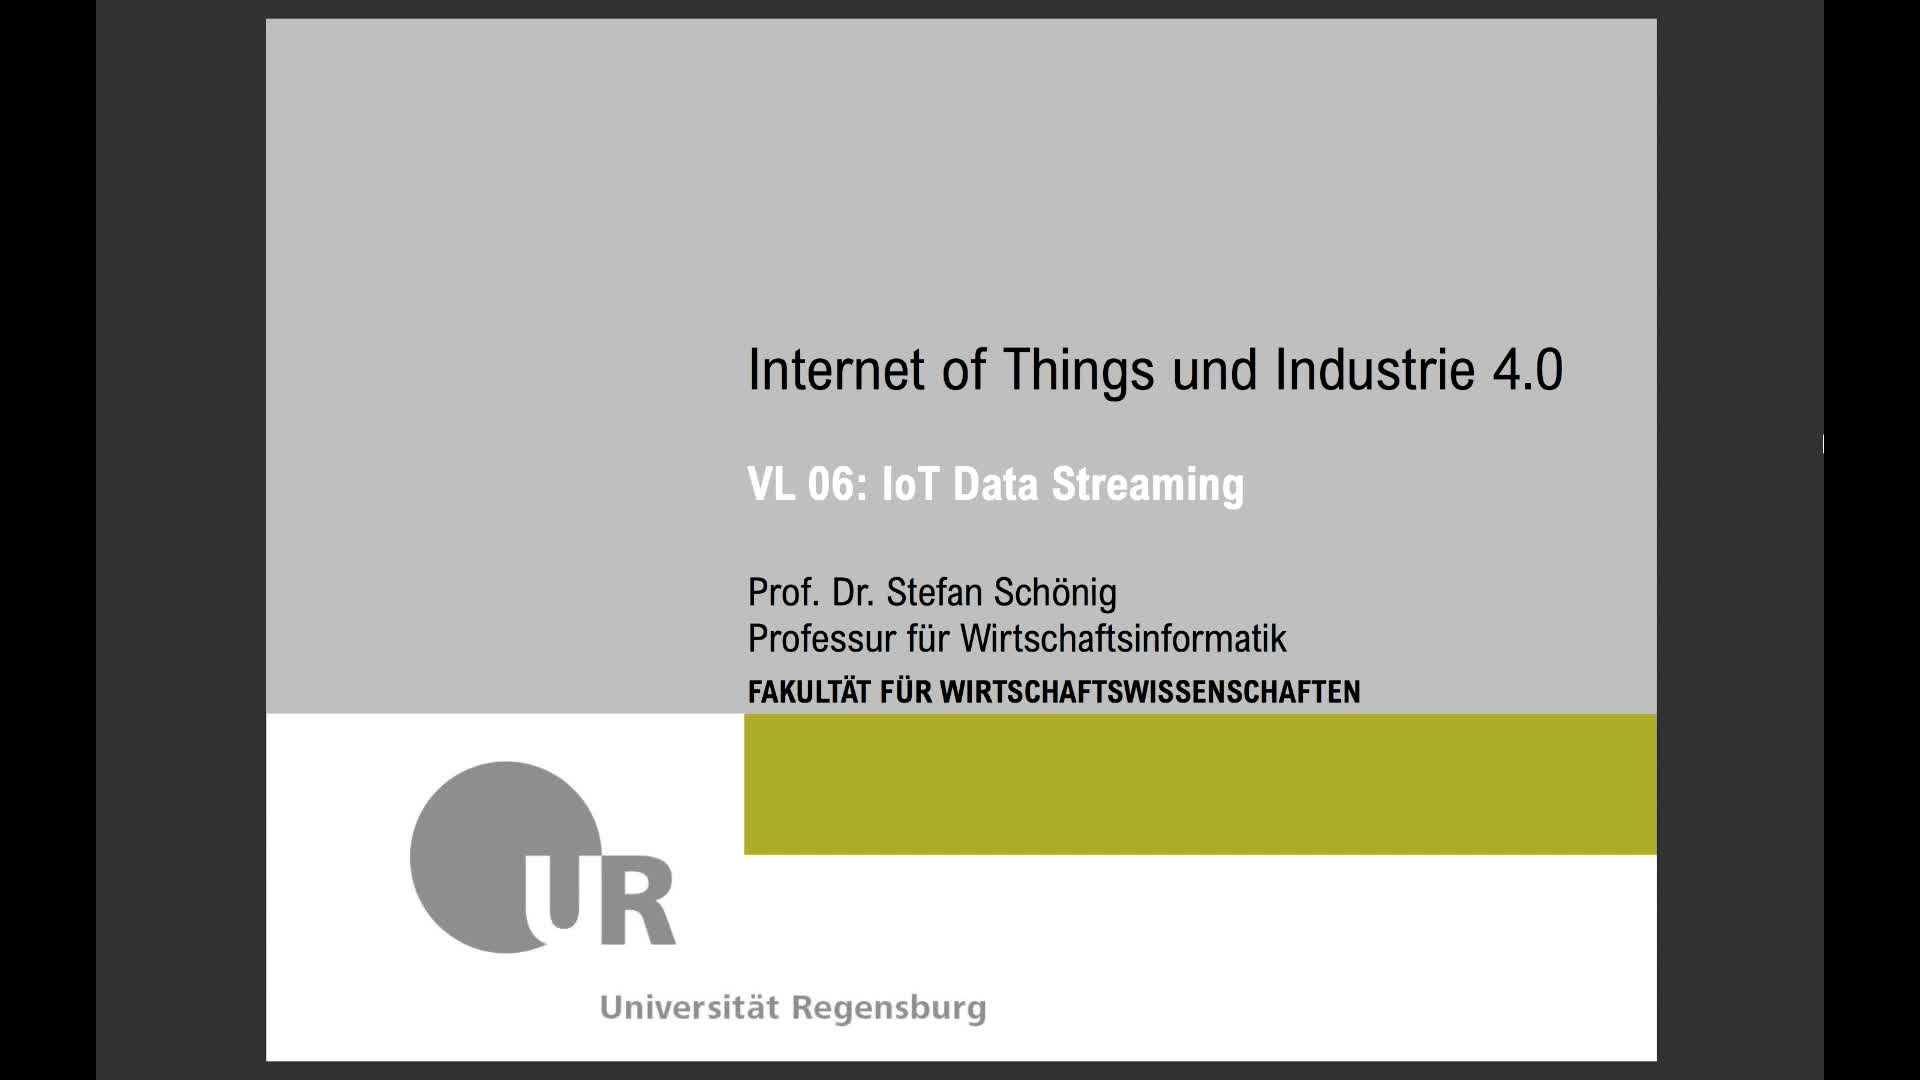 SS 2020 - Internet of Things und Industrie 4.0 - Kapitel 6 (Data Streaming)